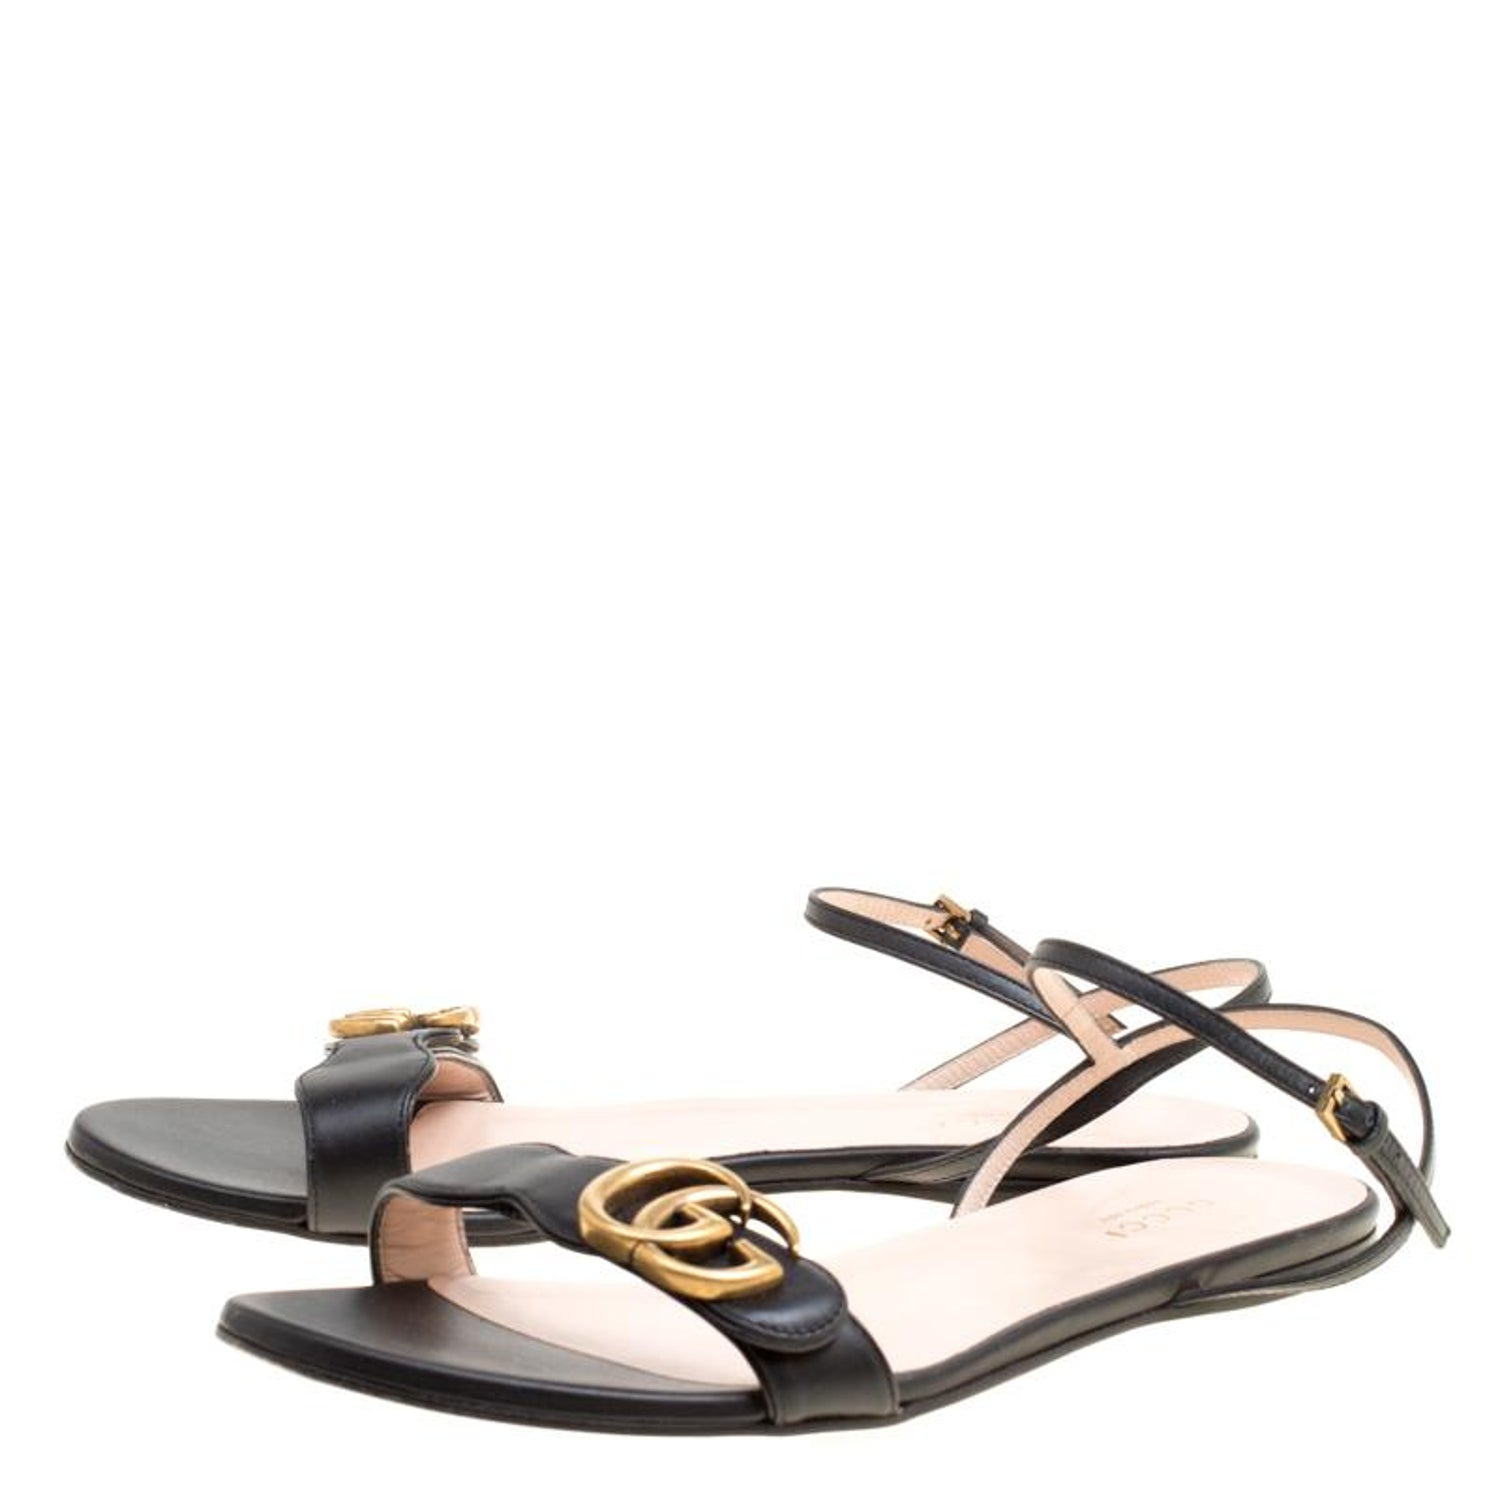 74a95a639 Gucci Black Leather Marmont Double G Flat Ankle Strap Sandals Size 38 For  Sale at 1stdibs